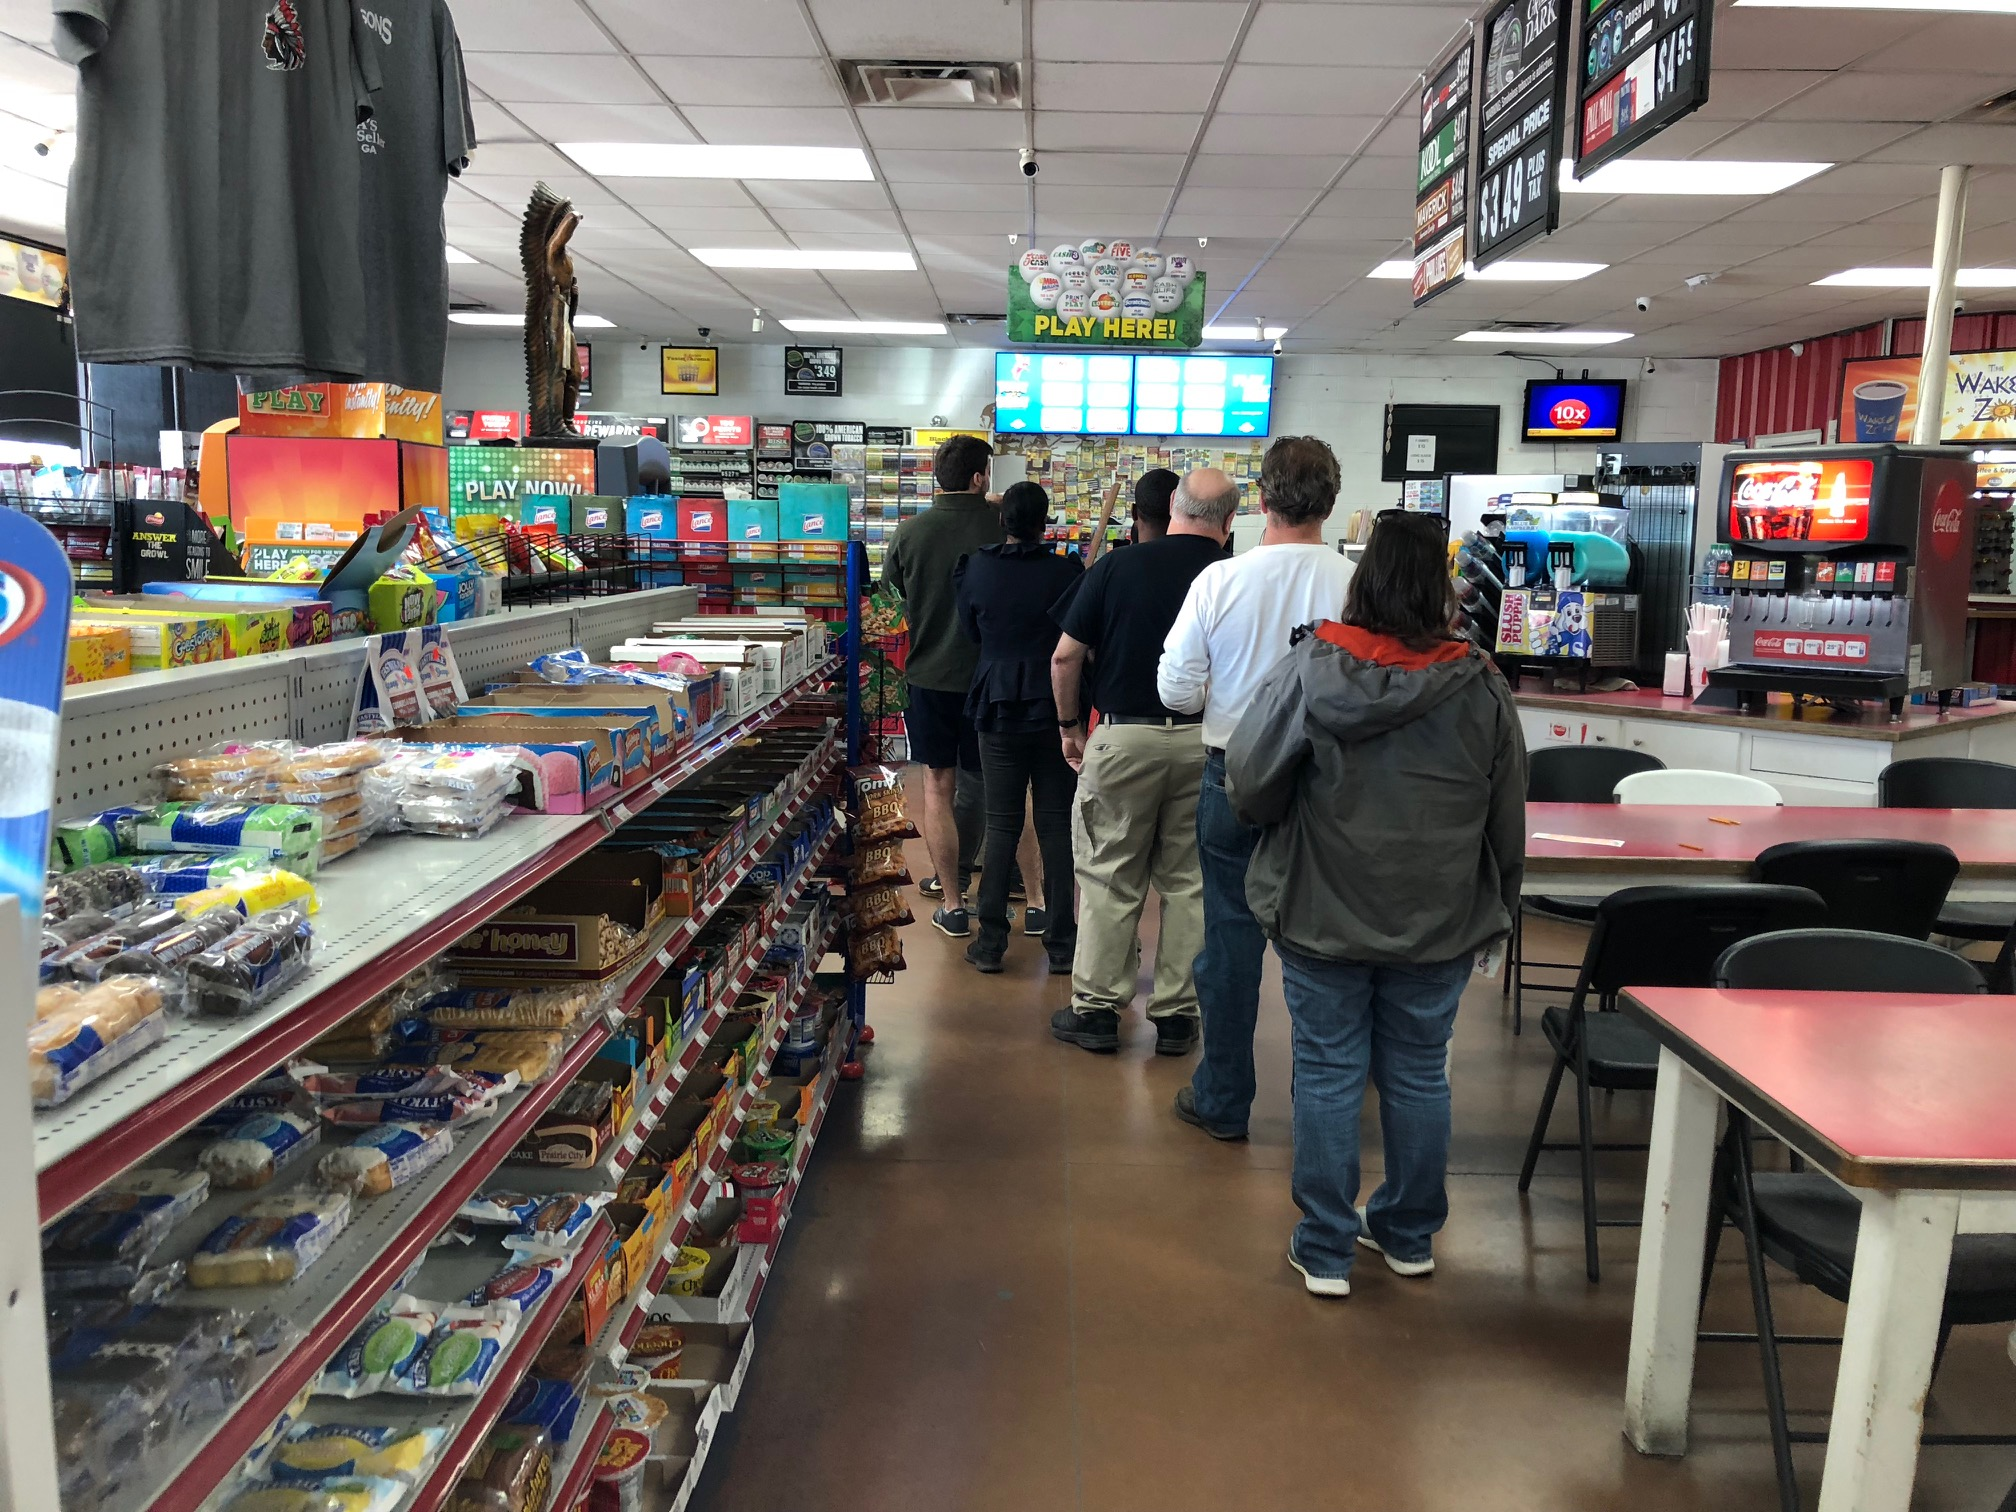 Alabama residents head to Georgia to buy Powerball lottery tickets